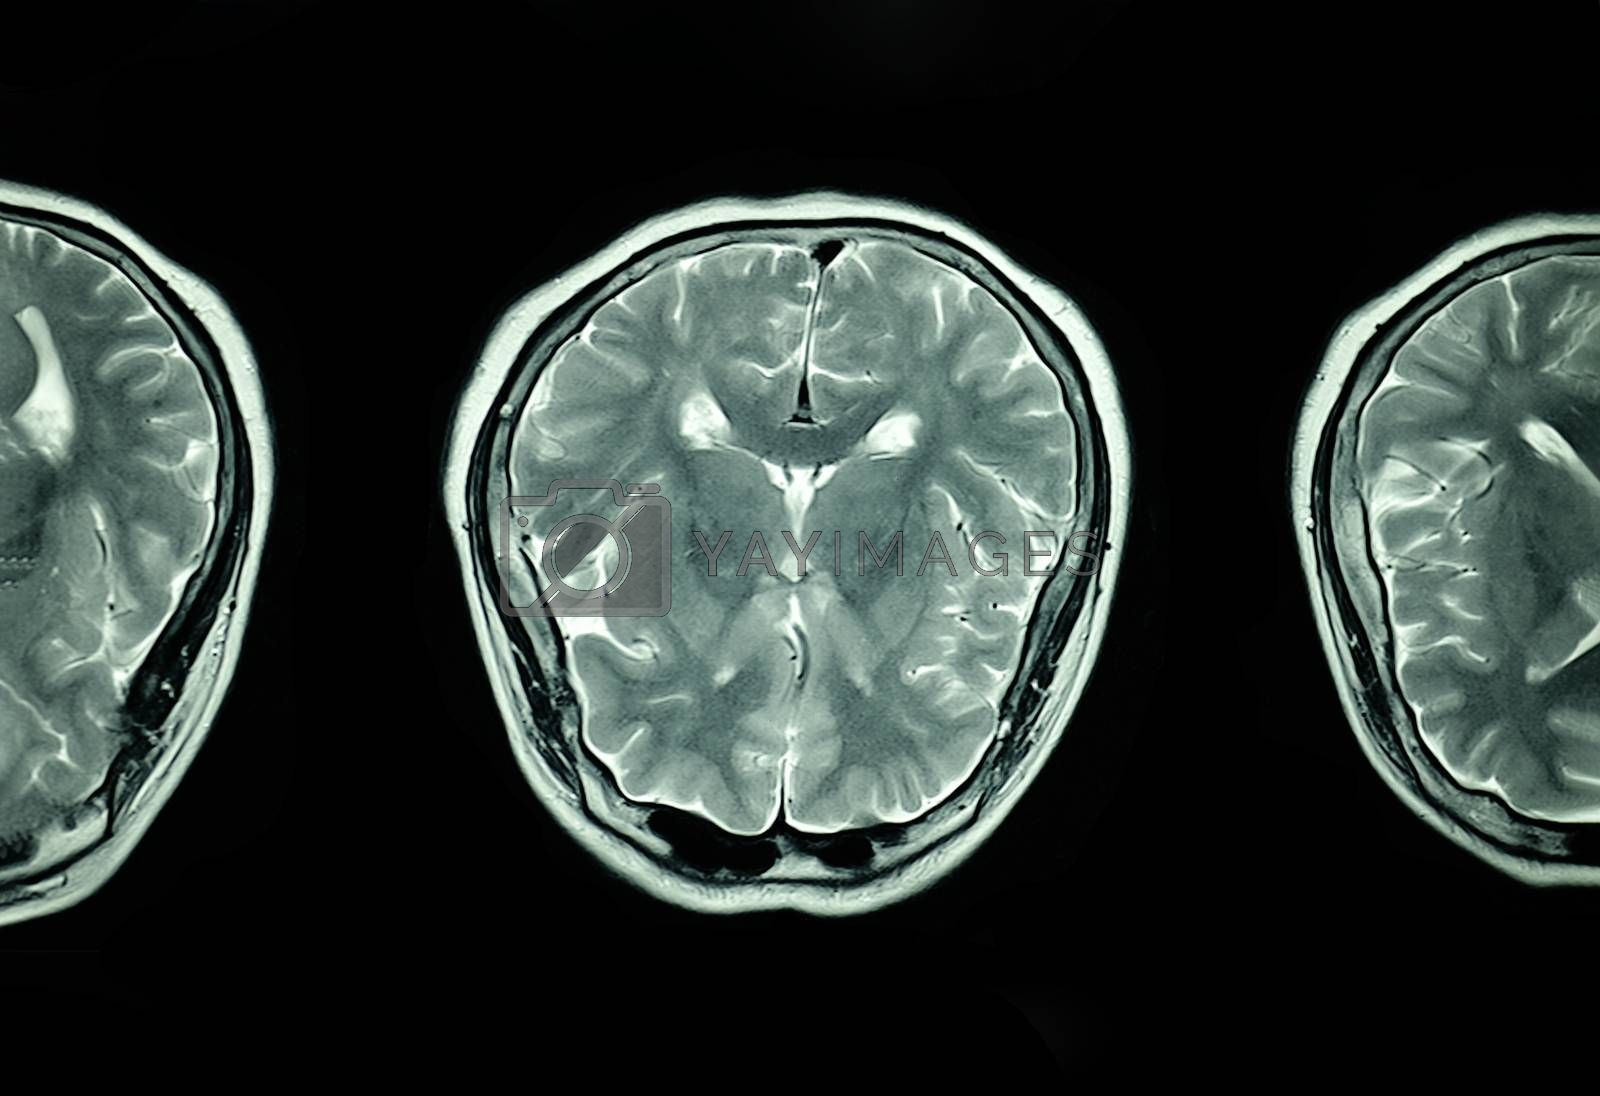 MRI scan of the brain by Nawoot